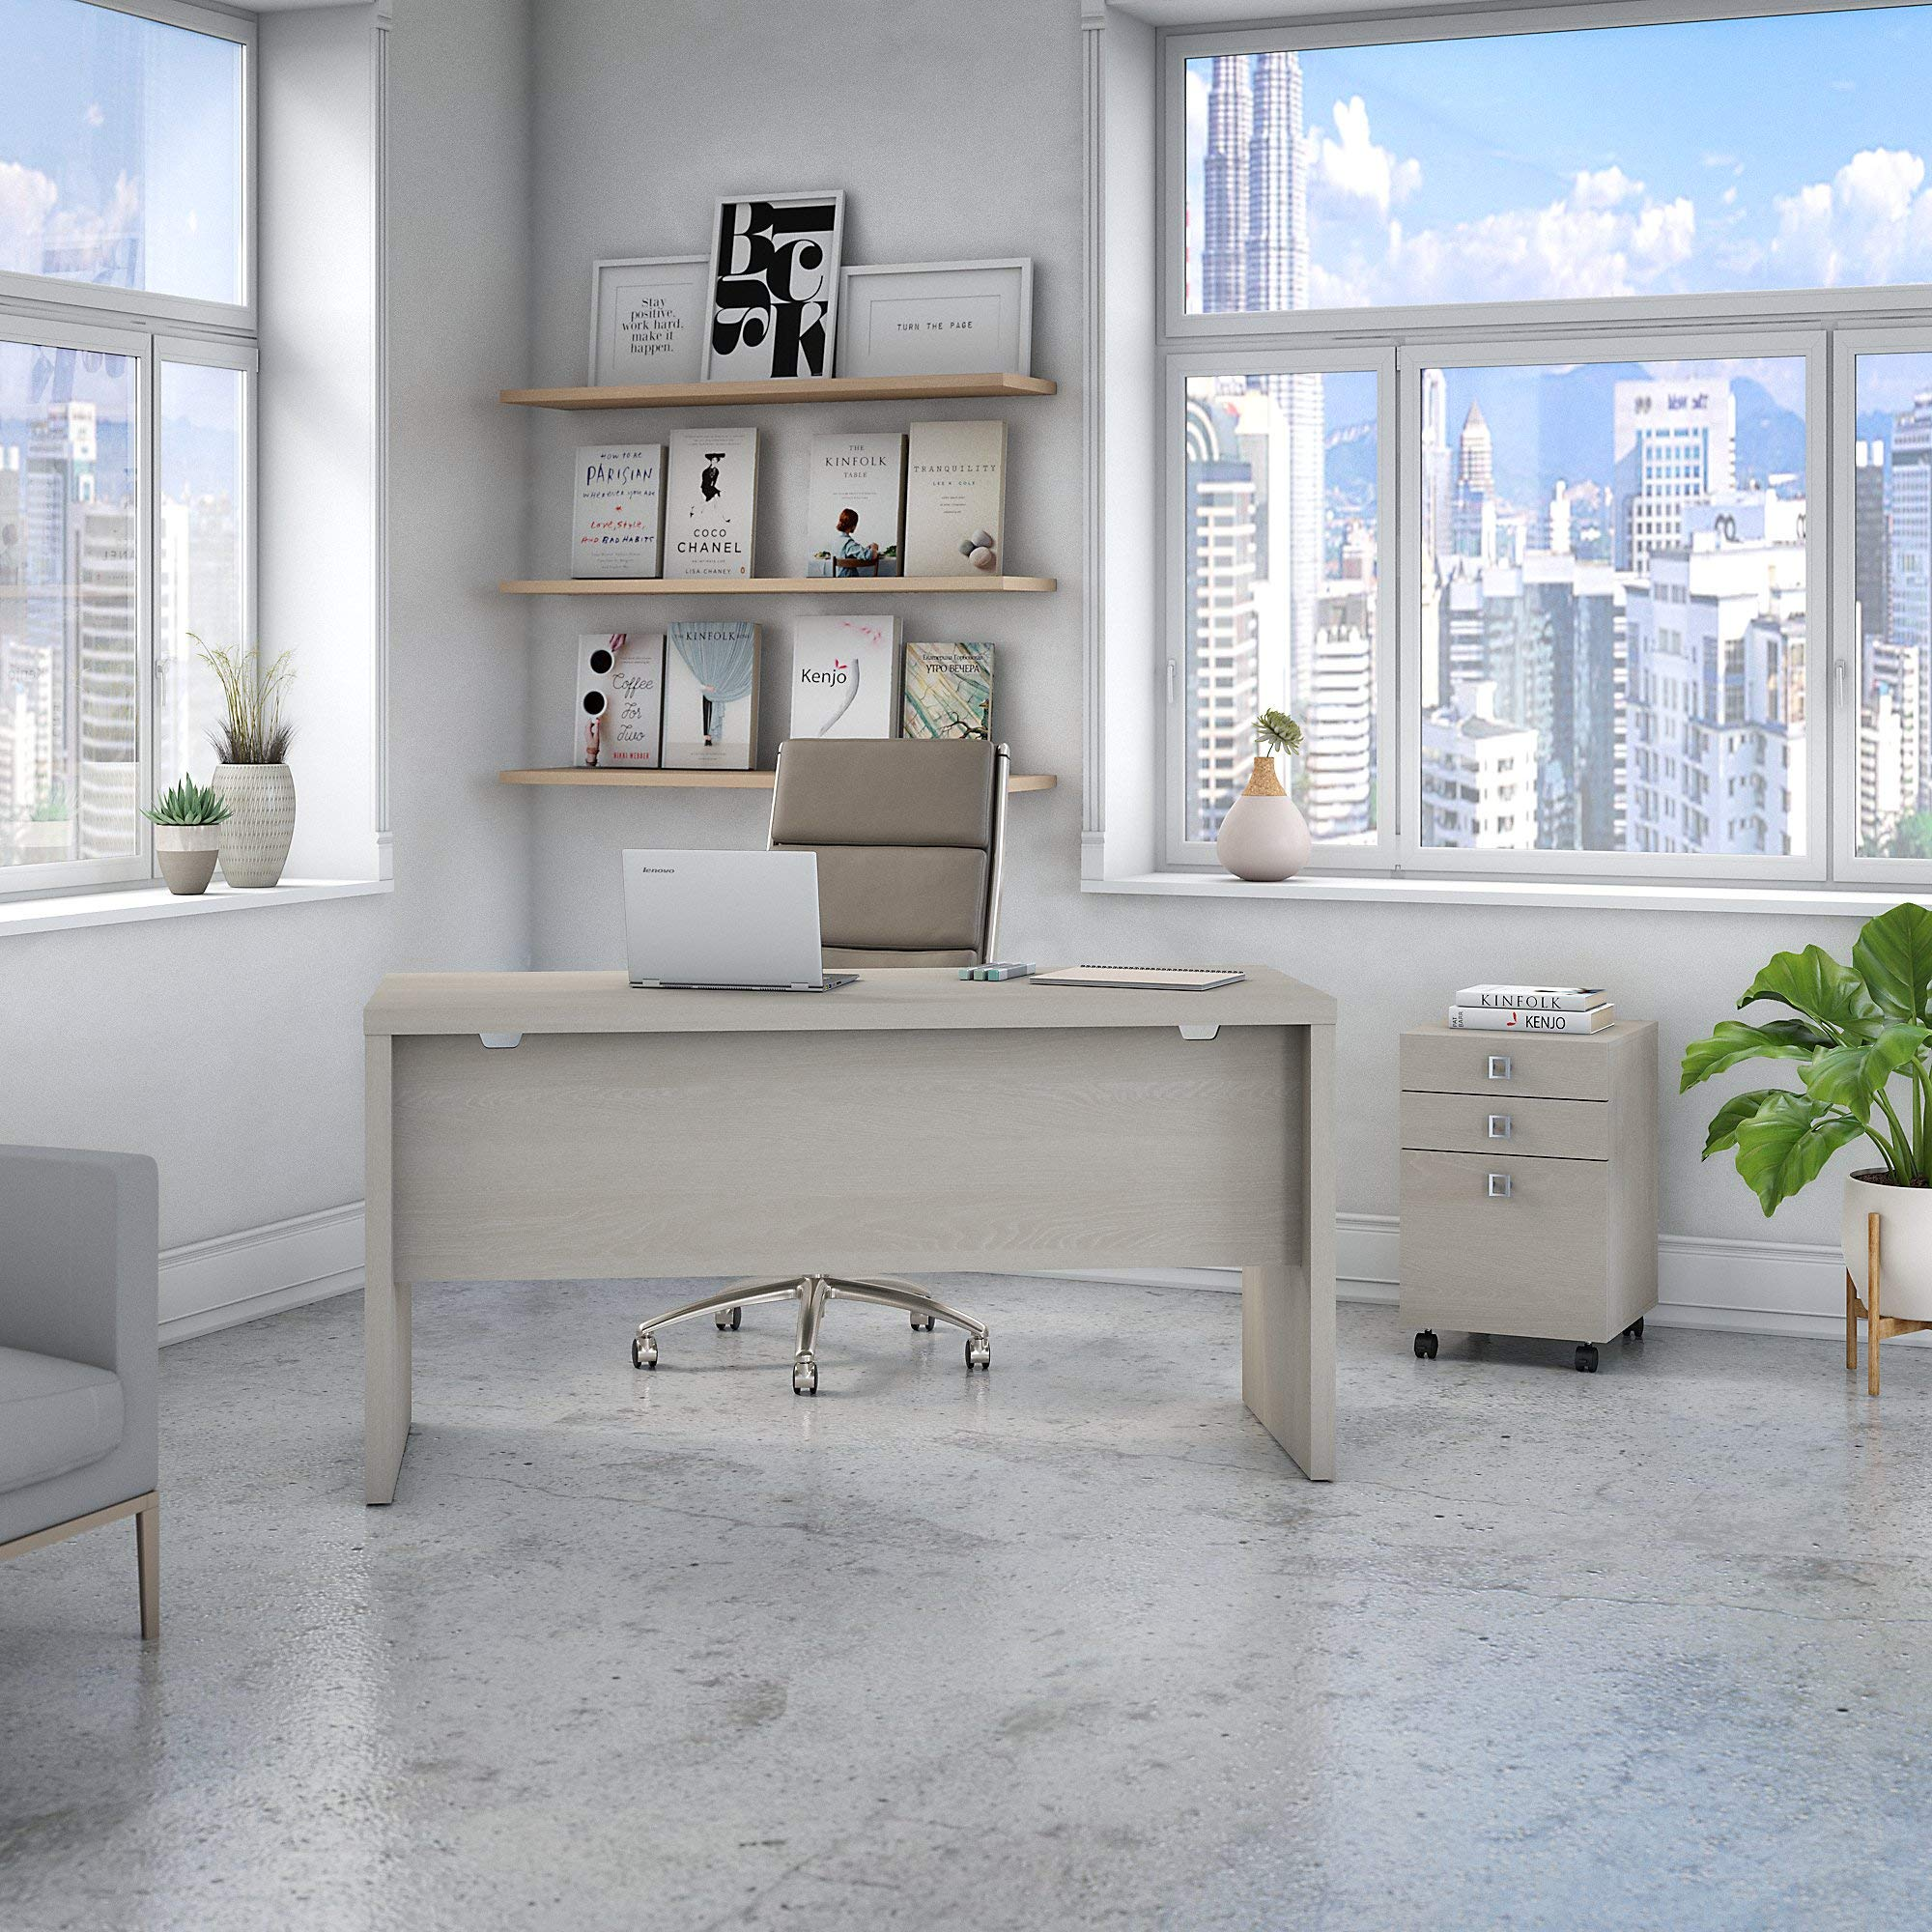 Office by kathy ireland Echo Credenza Desk with Mobile File Cabinet in Gray Sand by Office by kathy ireland (Image #2)